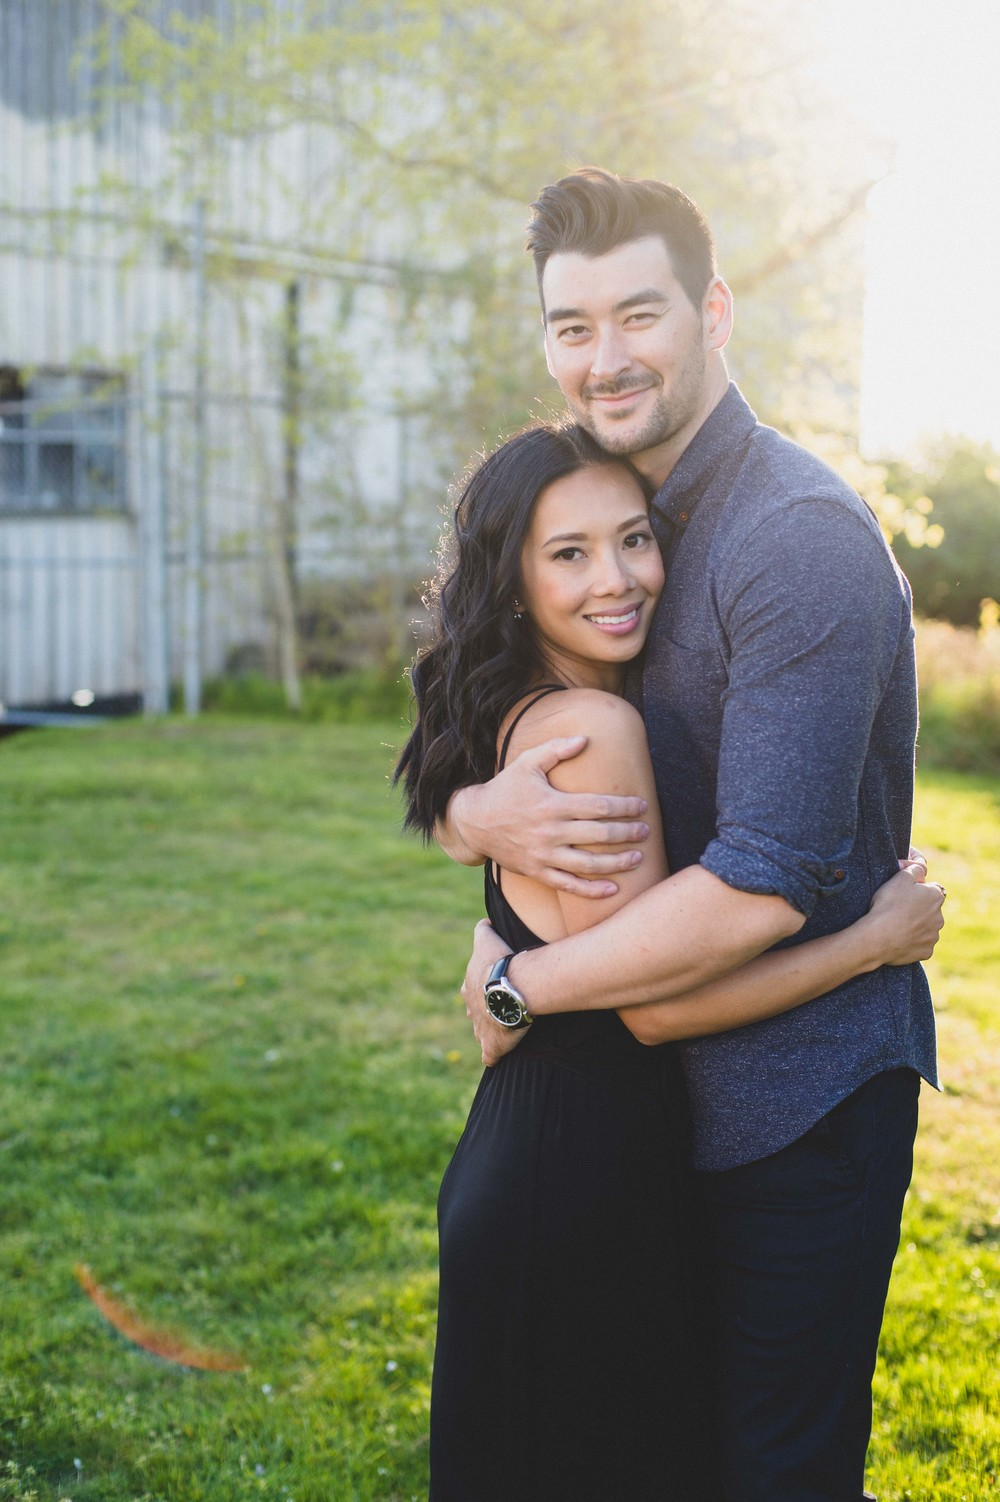 Vaccouver Steveston engagement photography Edward Lai Photography-16.jpg